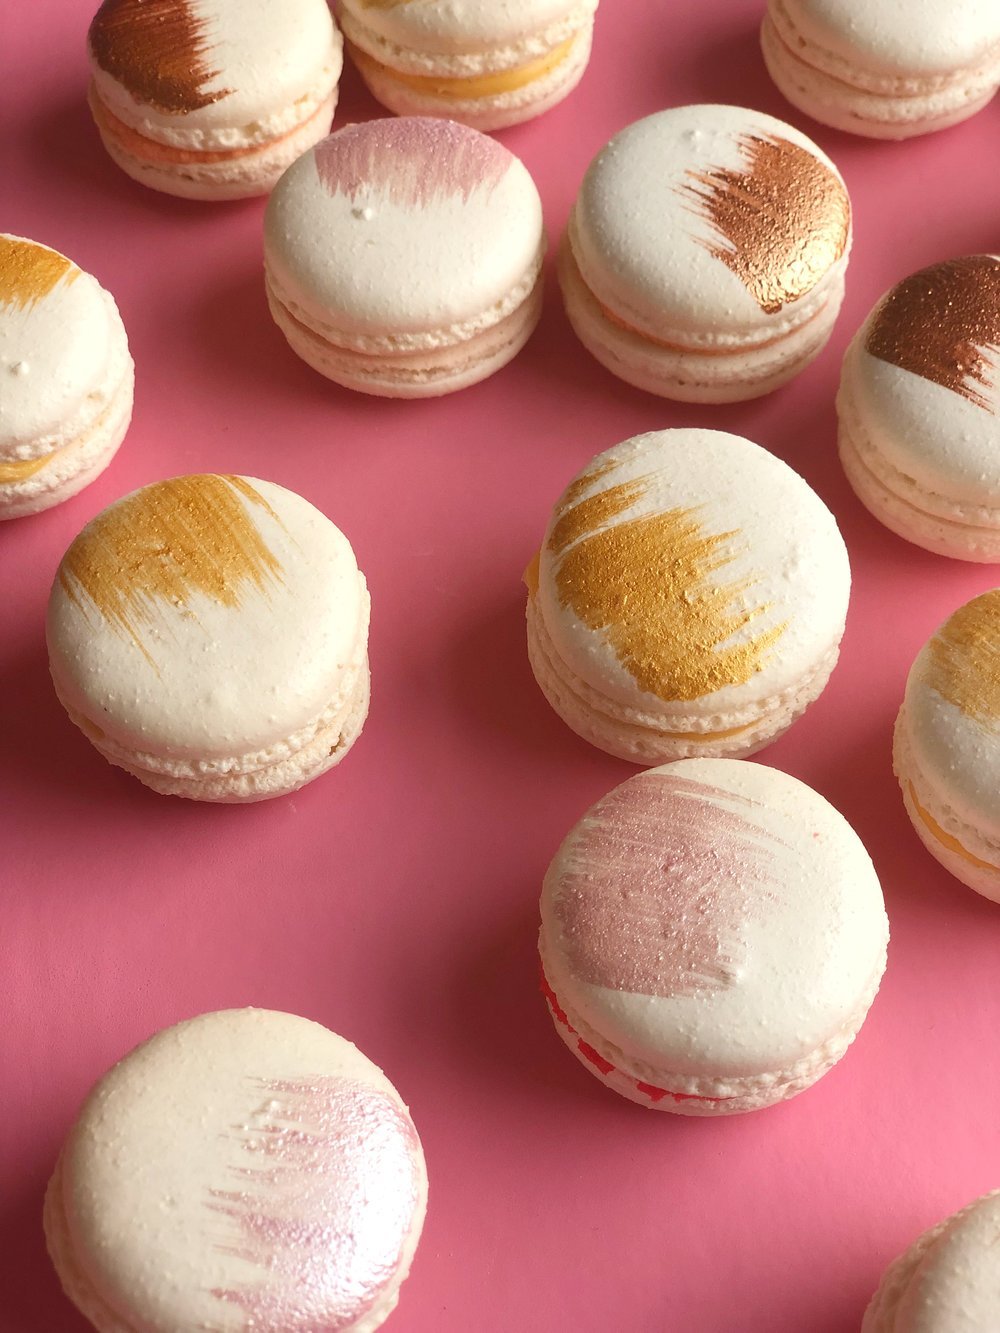 Macaron-Munching Around theWorld